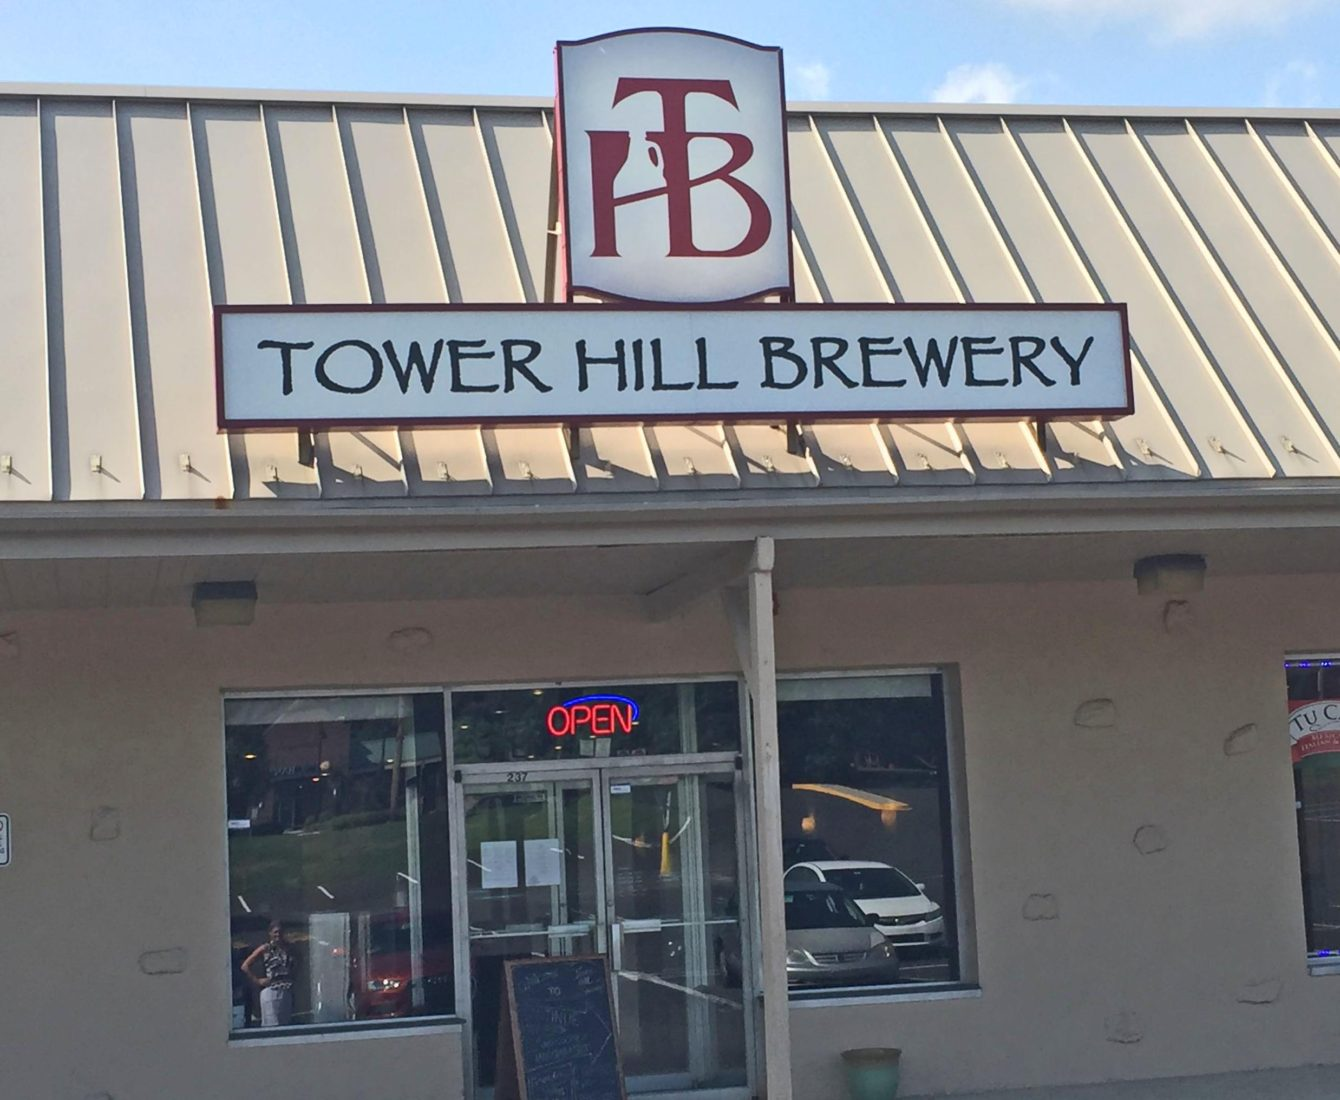 279. Tower Hill Brewing, Chalfont PA, 2016